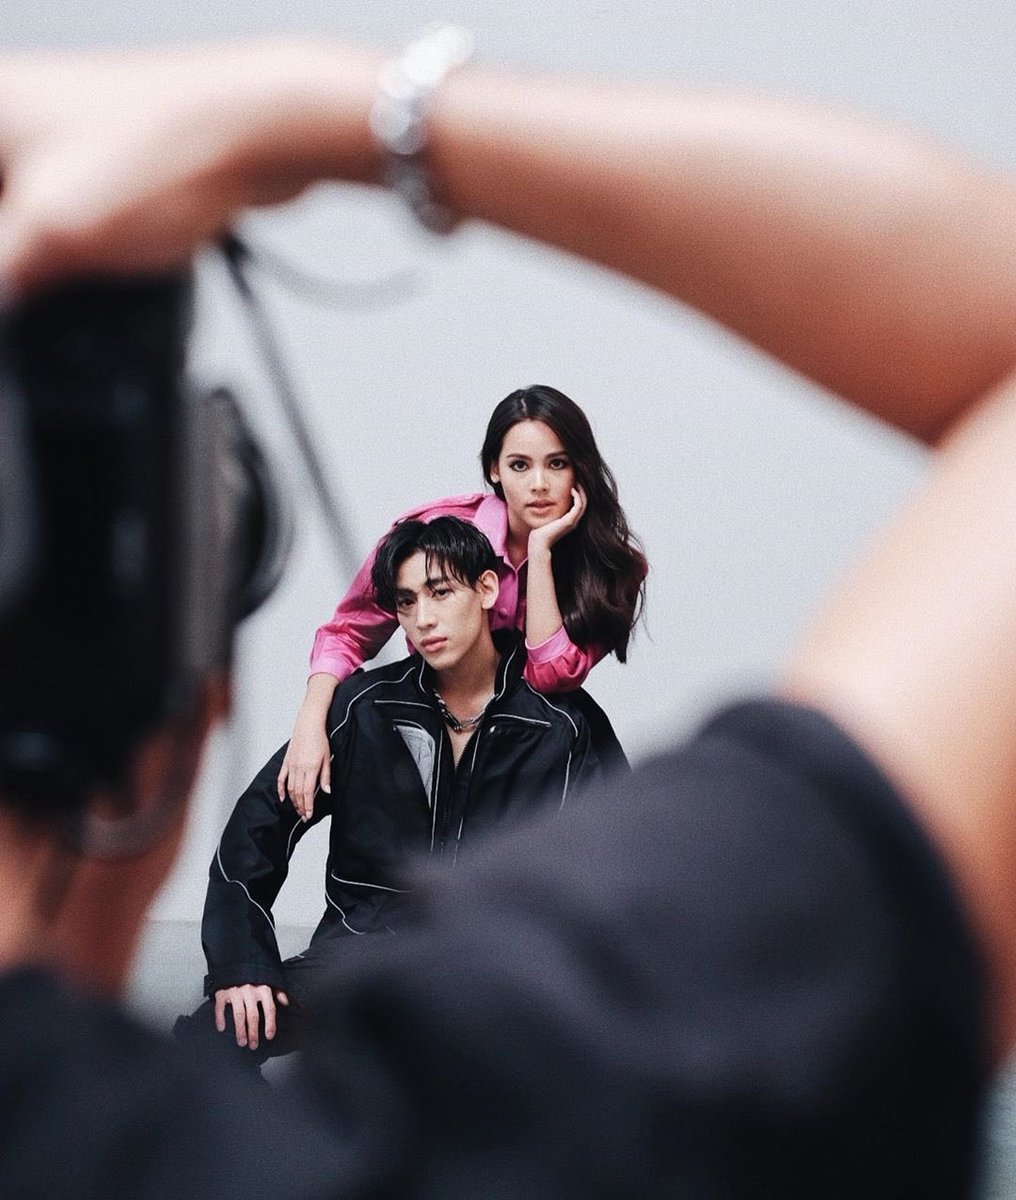 Behind the scenes #urassayas #ญาญ่า #BamBam #bambam1a #GOT7 <br>http://pic.twitter.com/AEkFvuiC0H